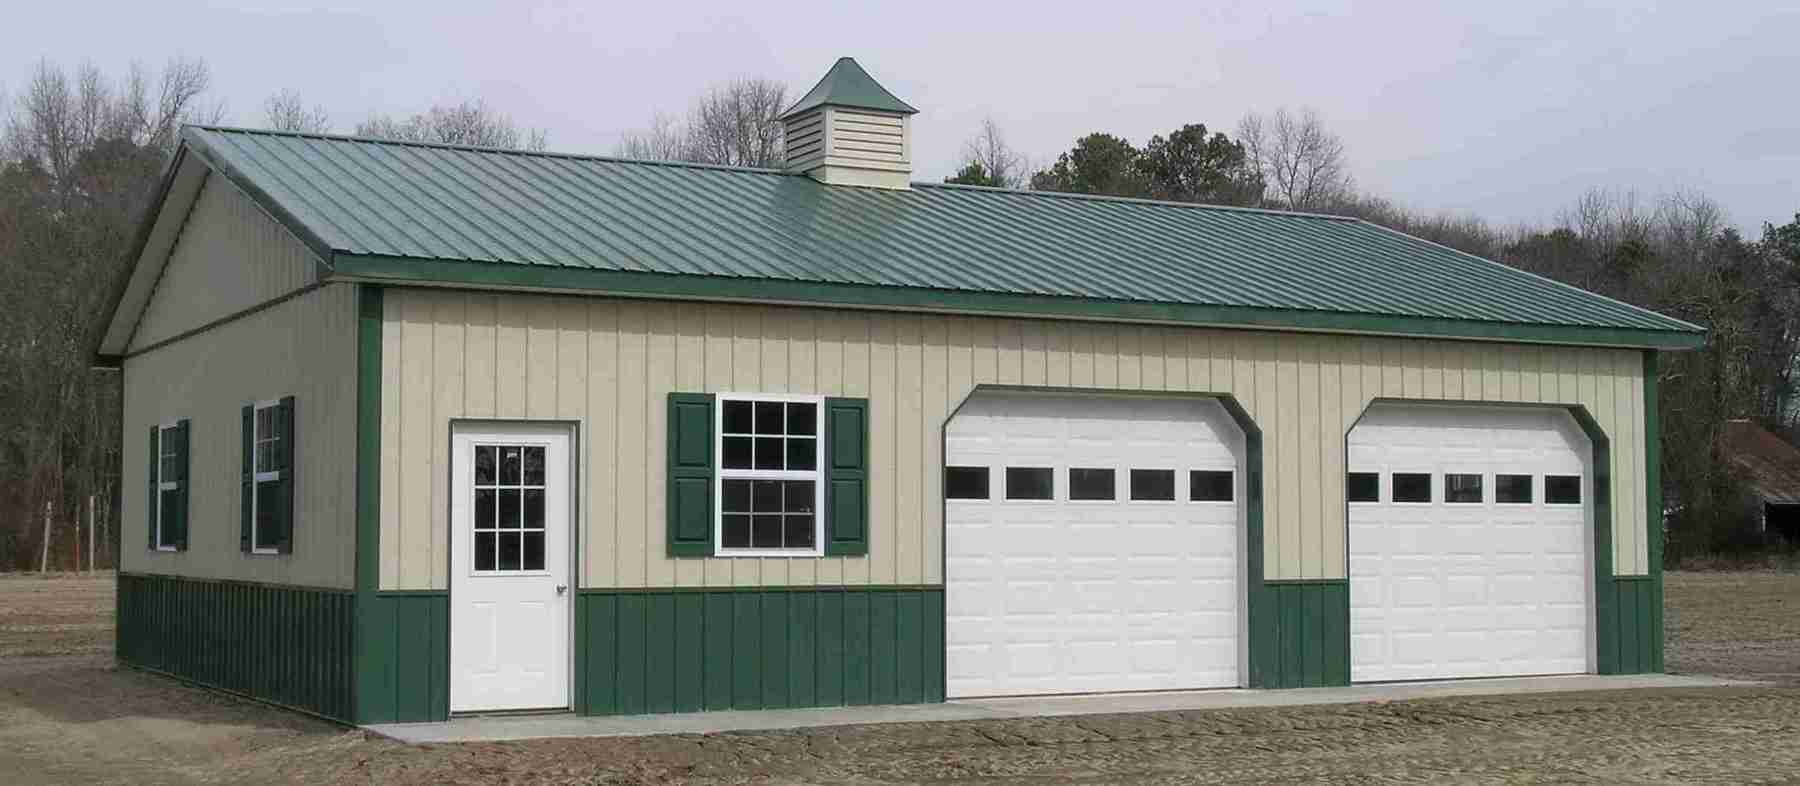 Menards pole barn kit joy studio design gallery best for Pole barn style garage